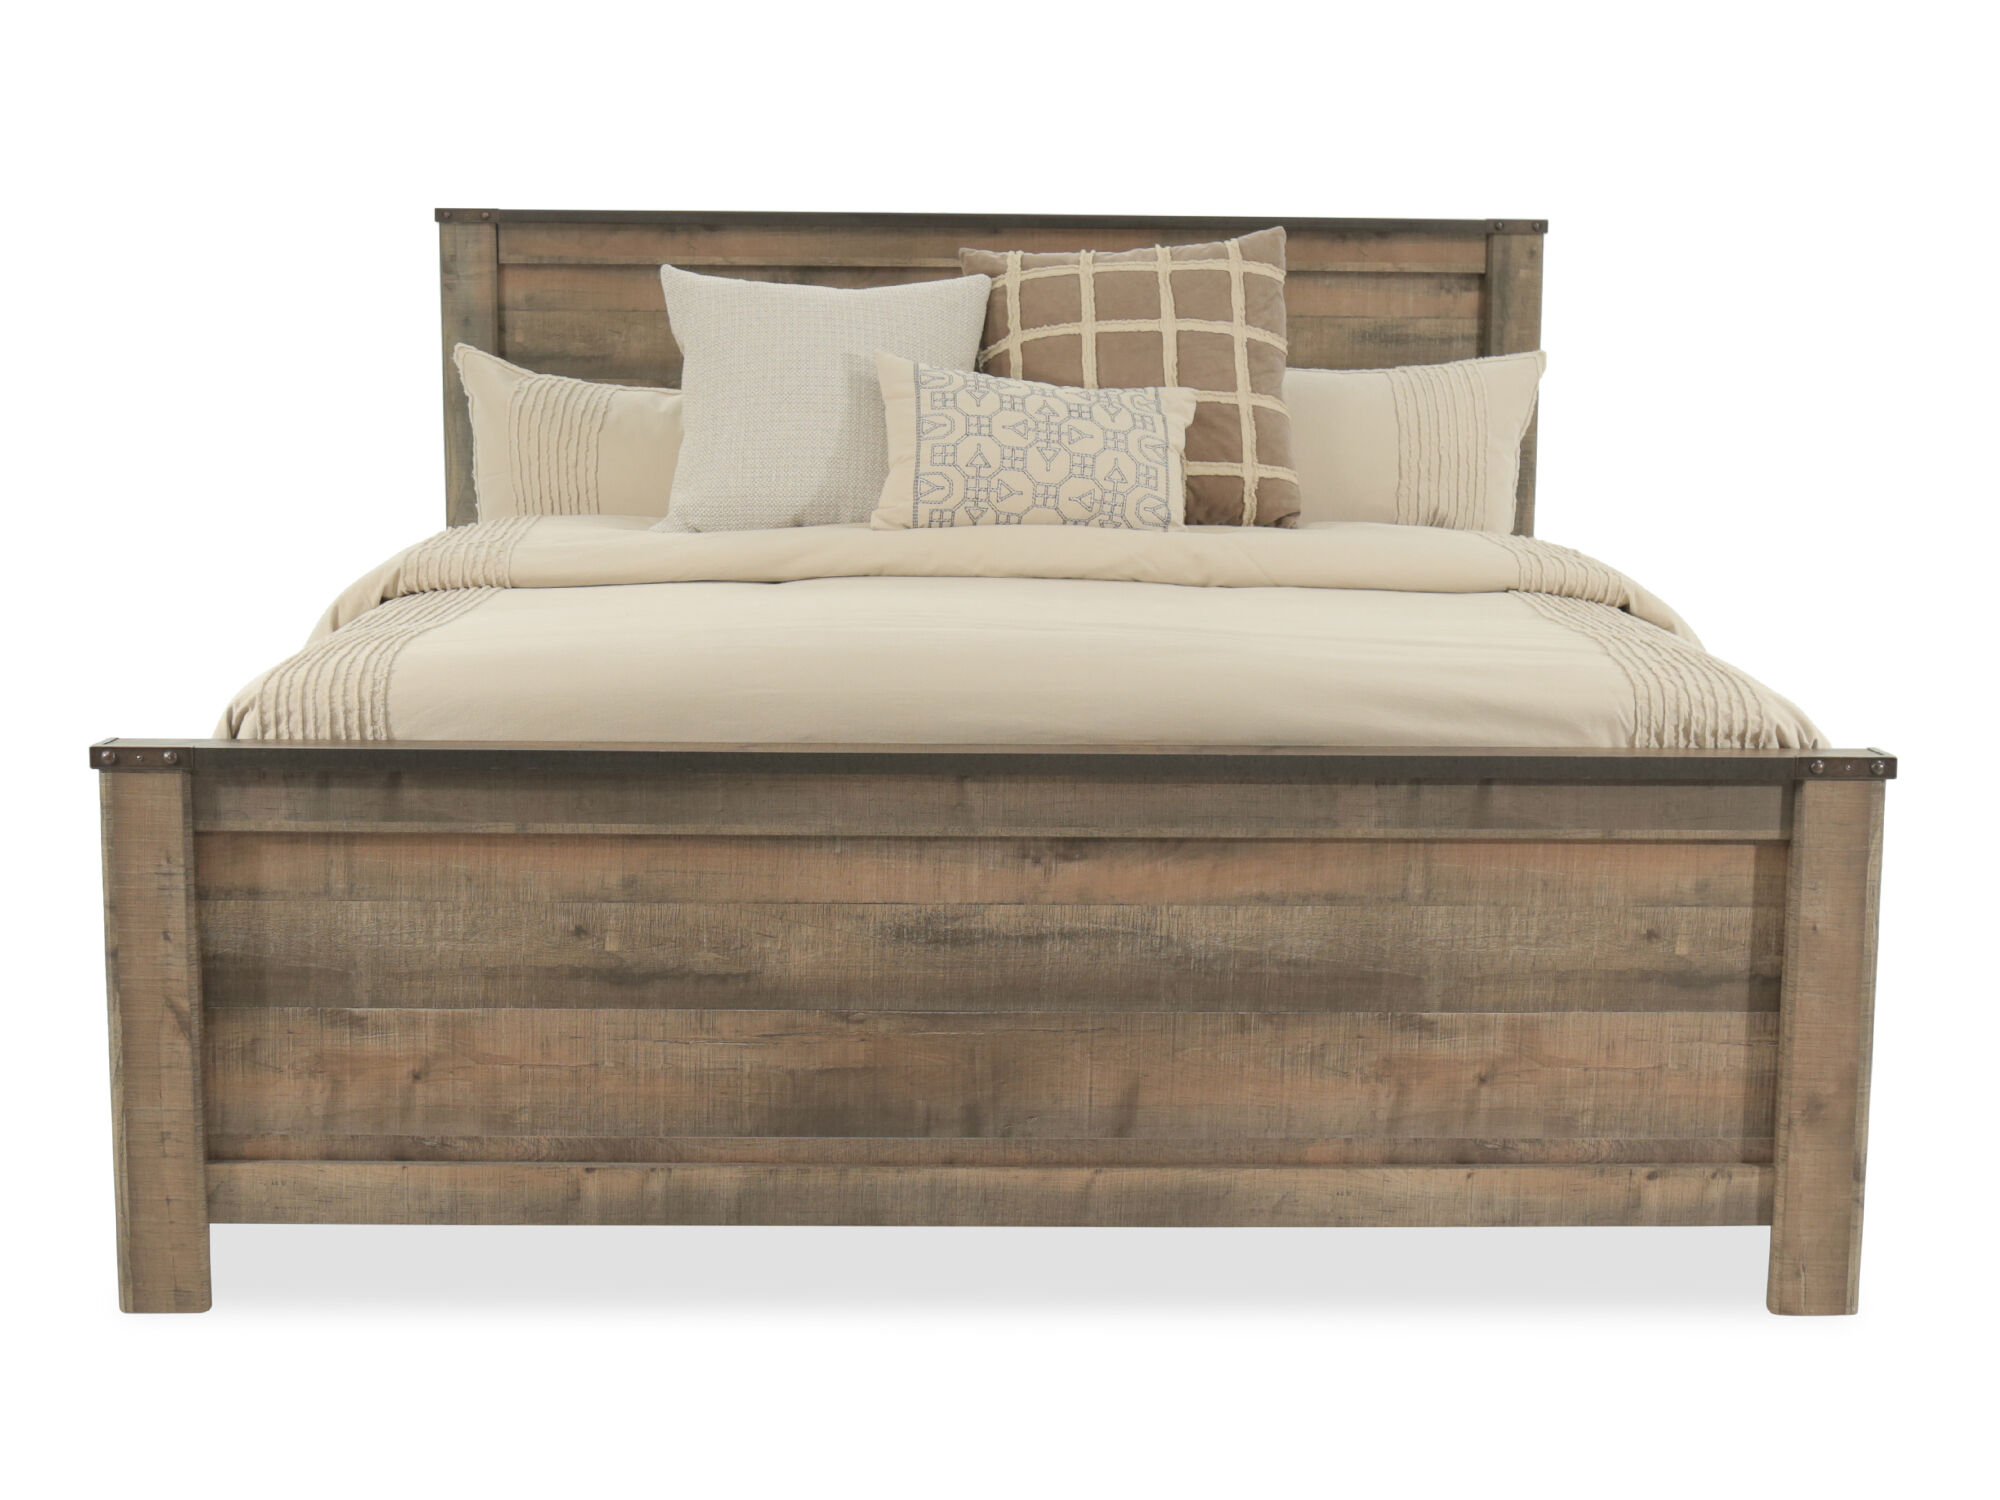 54 Rustic Farmhouse Plank Panel Bed In Brown Mathis